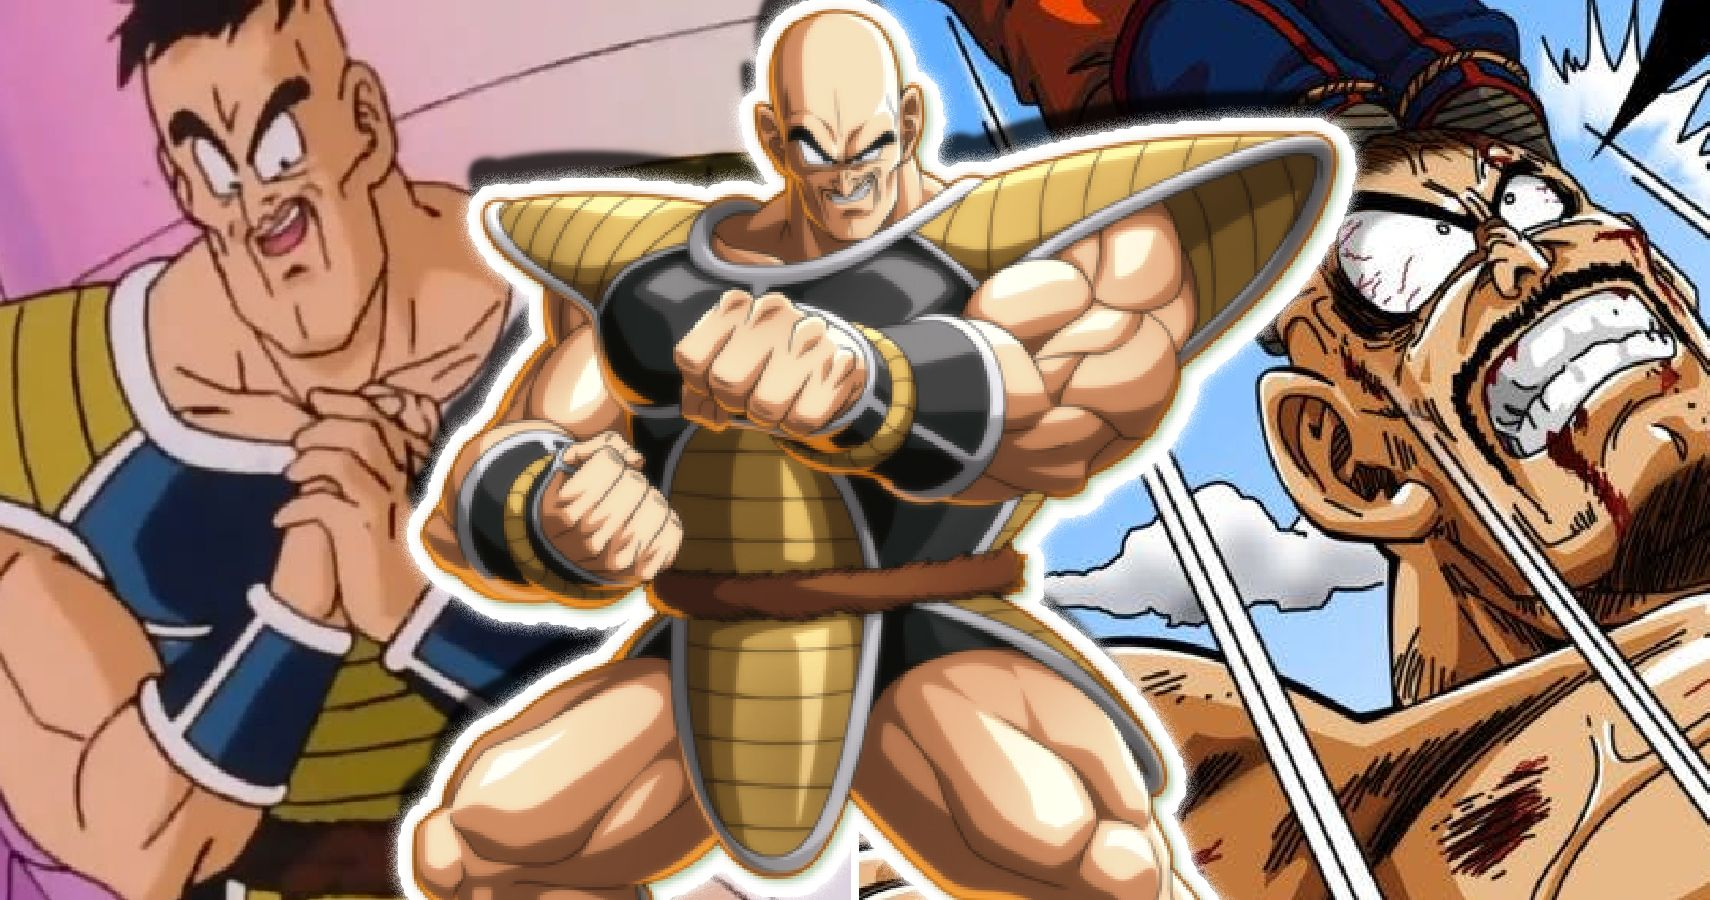 Crazy Things You Didn't Know About Nappa From Dragon Ball Z